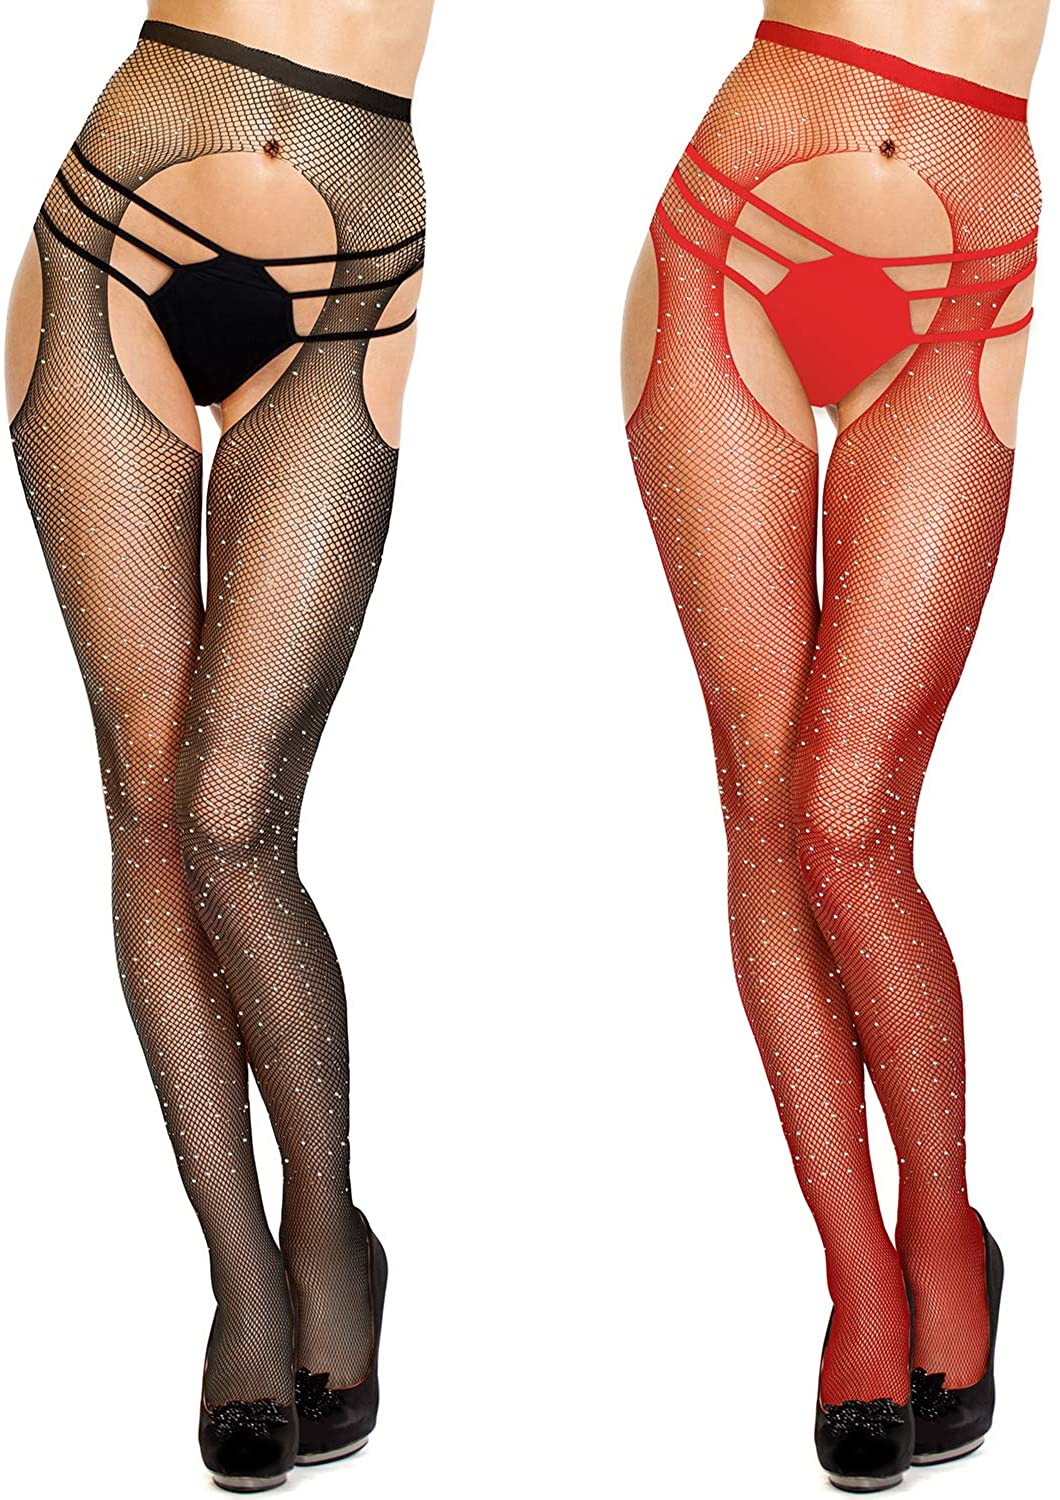 2 Pairs Lingerie Fishnet Stockings Rhinestone High Waist Tights Mesh Suspender Pantyhose Sheer for Women